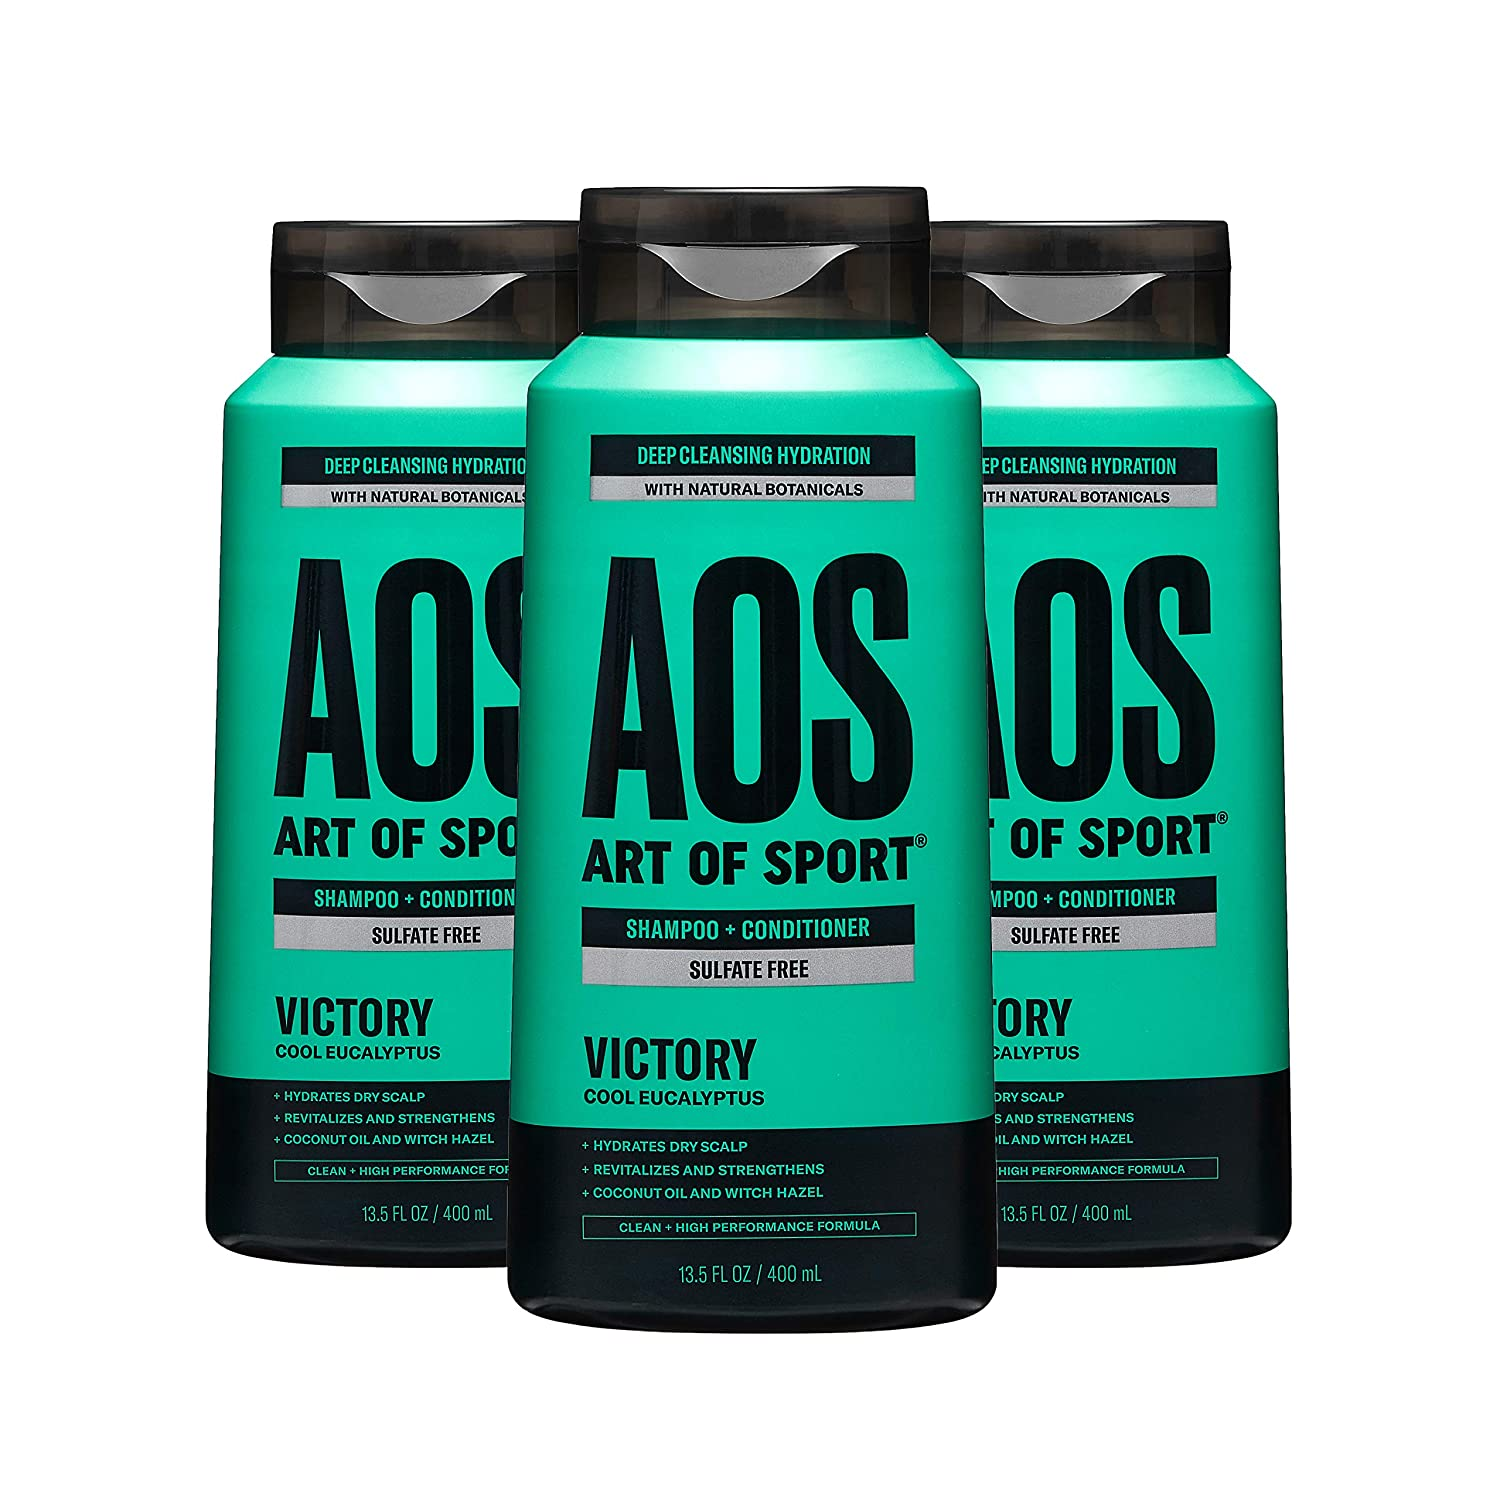 Art of Sport Men's 2 in 1 Shampoo and Conditioner